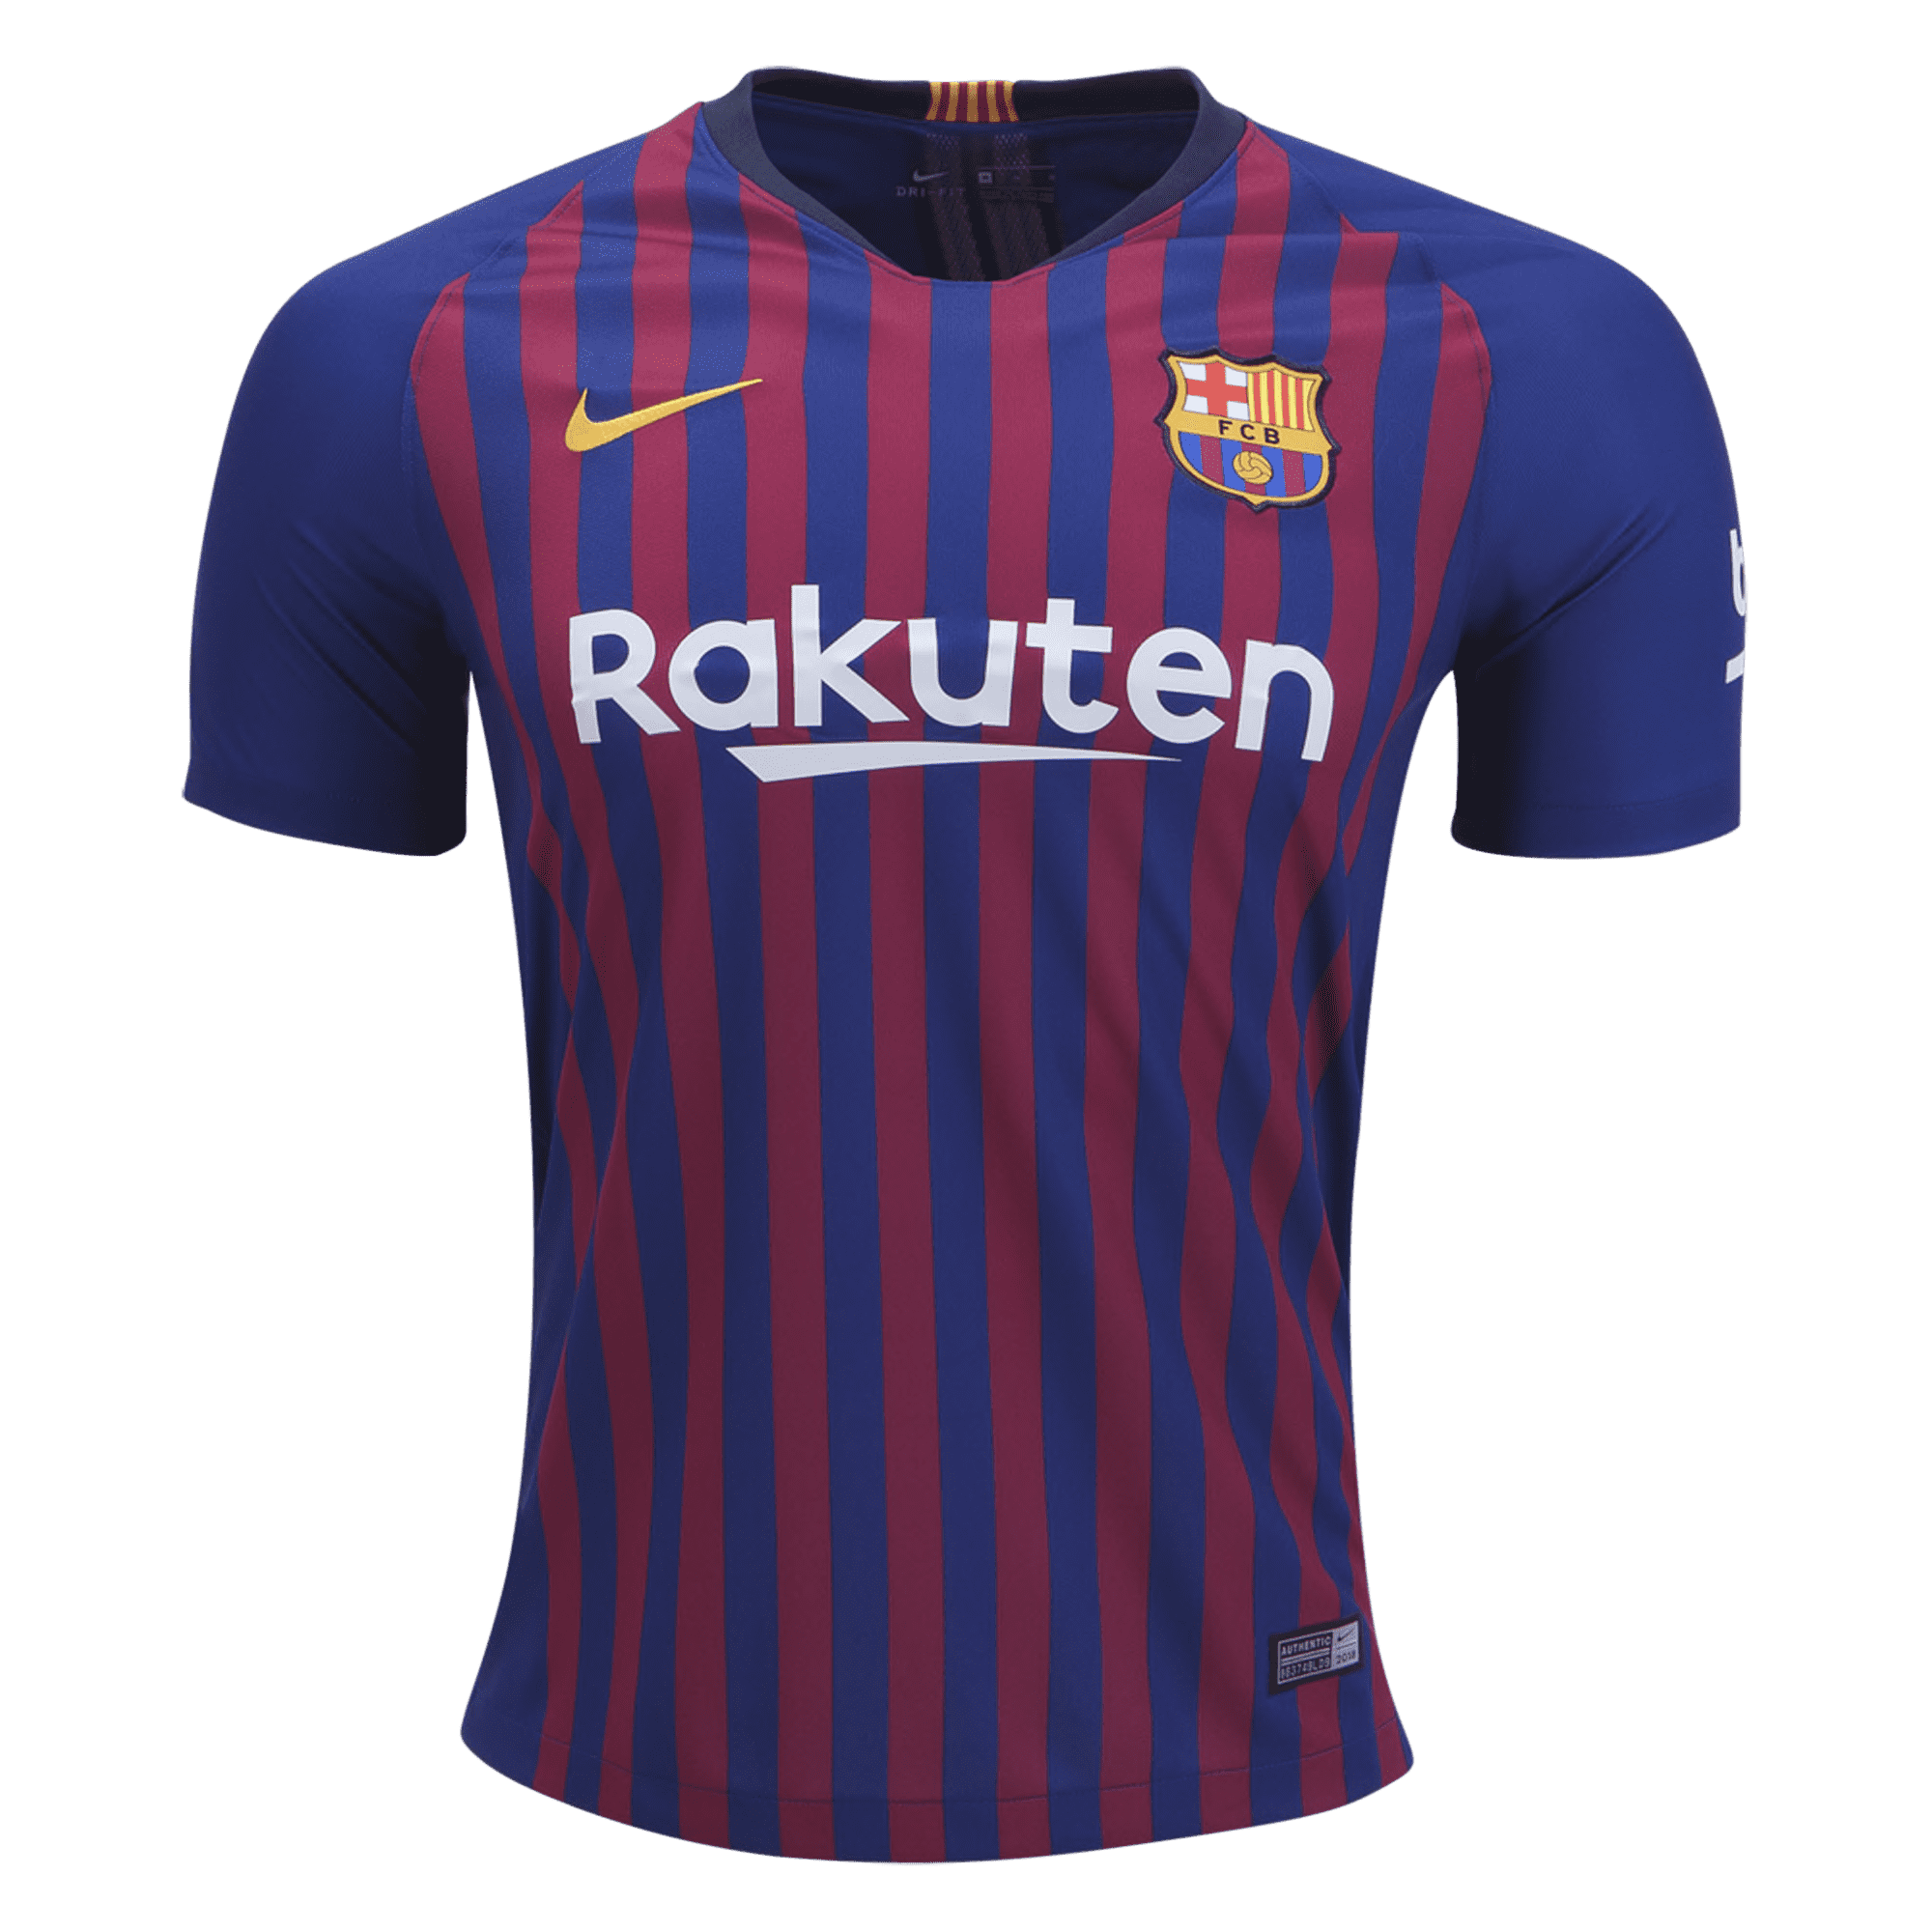 eec58d751 madaboutsoccer – The most complete soccer store